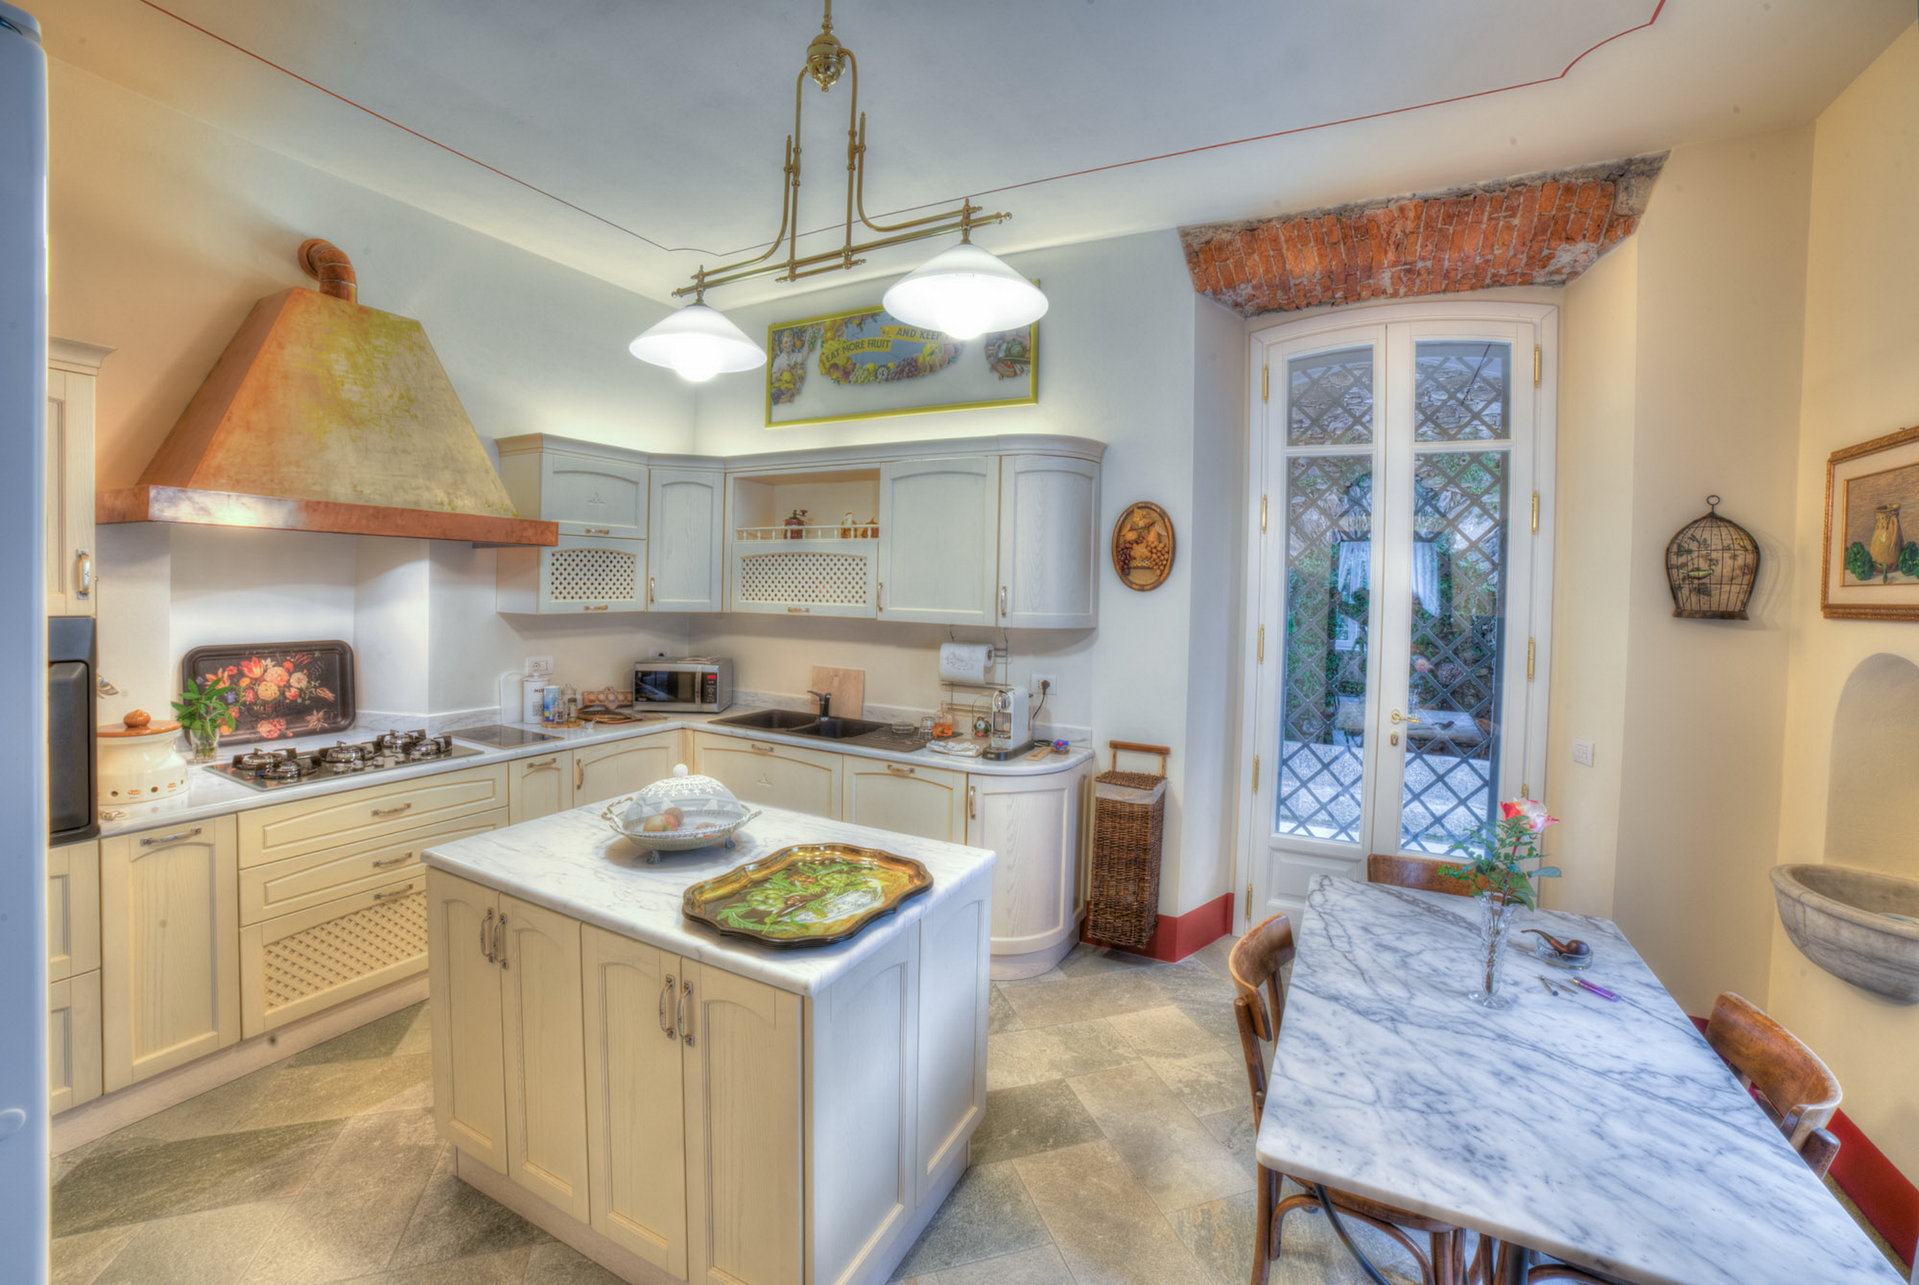 Historic villa with guesthouse and land for sale in Verbania - kitchen